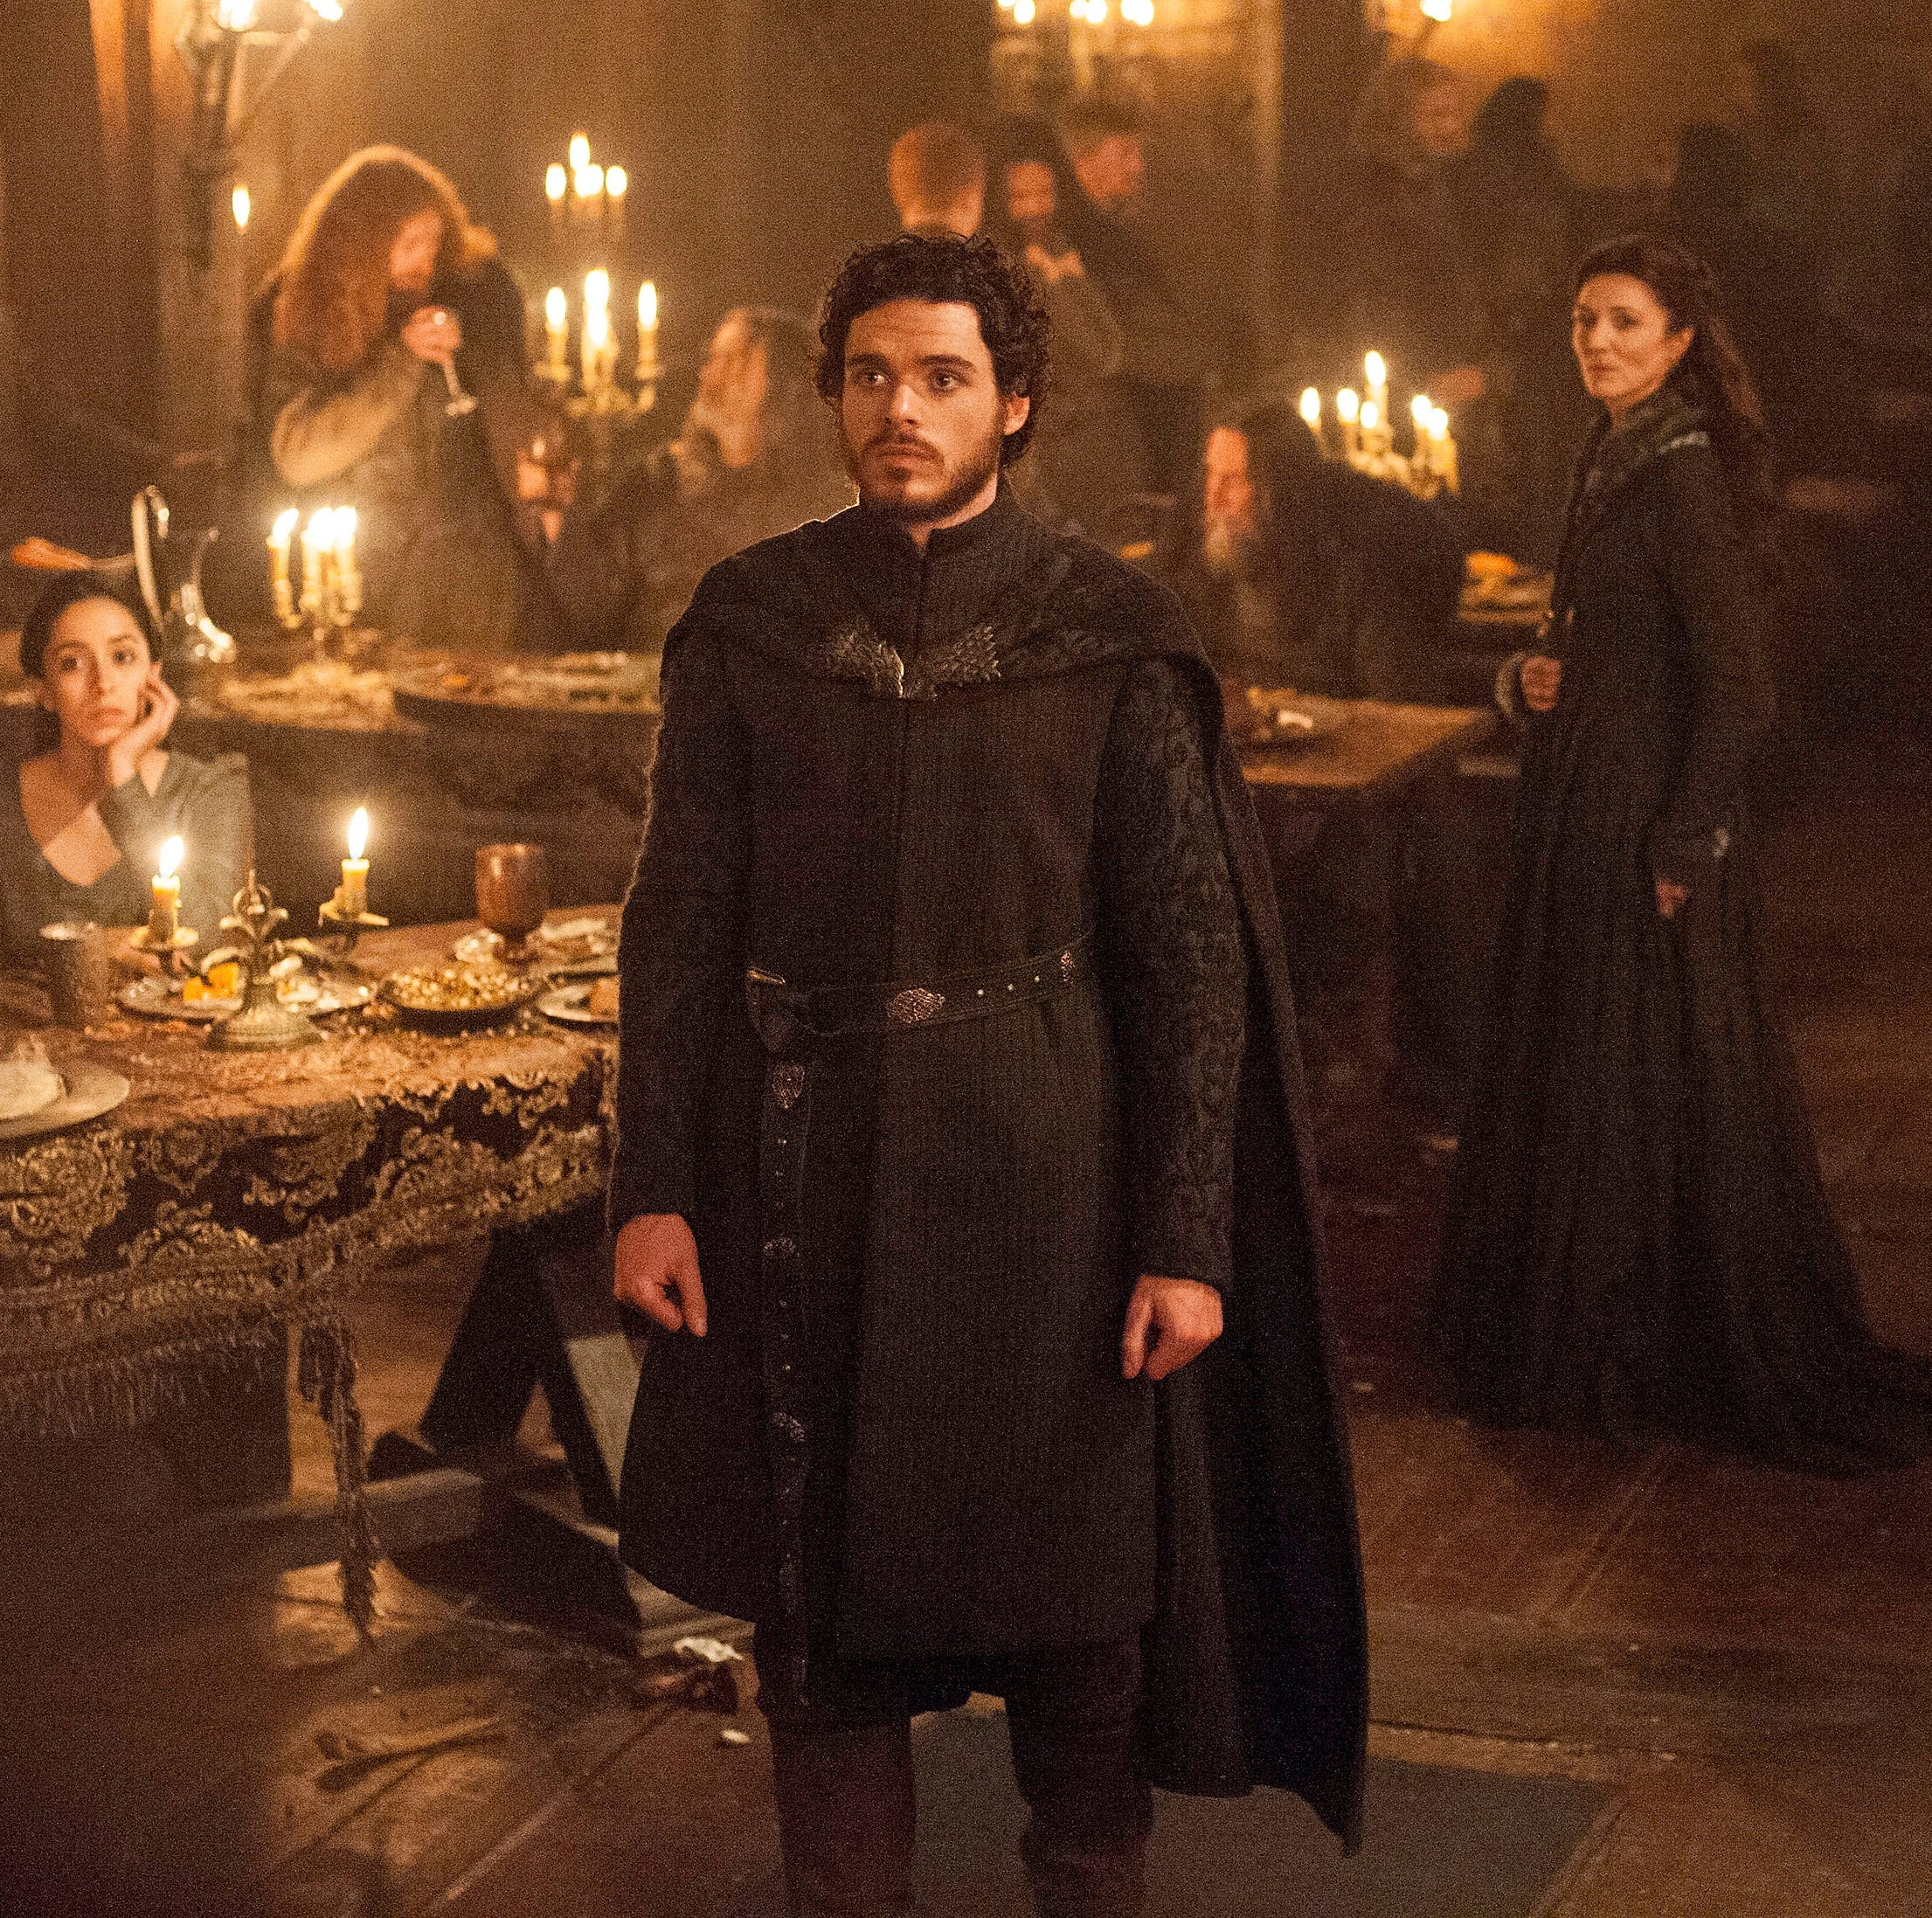 """Oona Chaplin as Talisa, Richard Madden as Robb Stark and Michelle Fairley as Catelyn Stark in """"The Rains of Castamere"""" episode of """"Game of Thrones."""""""